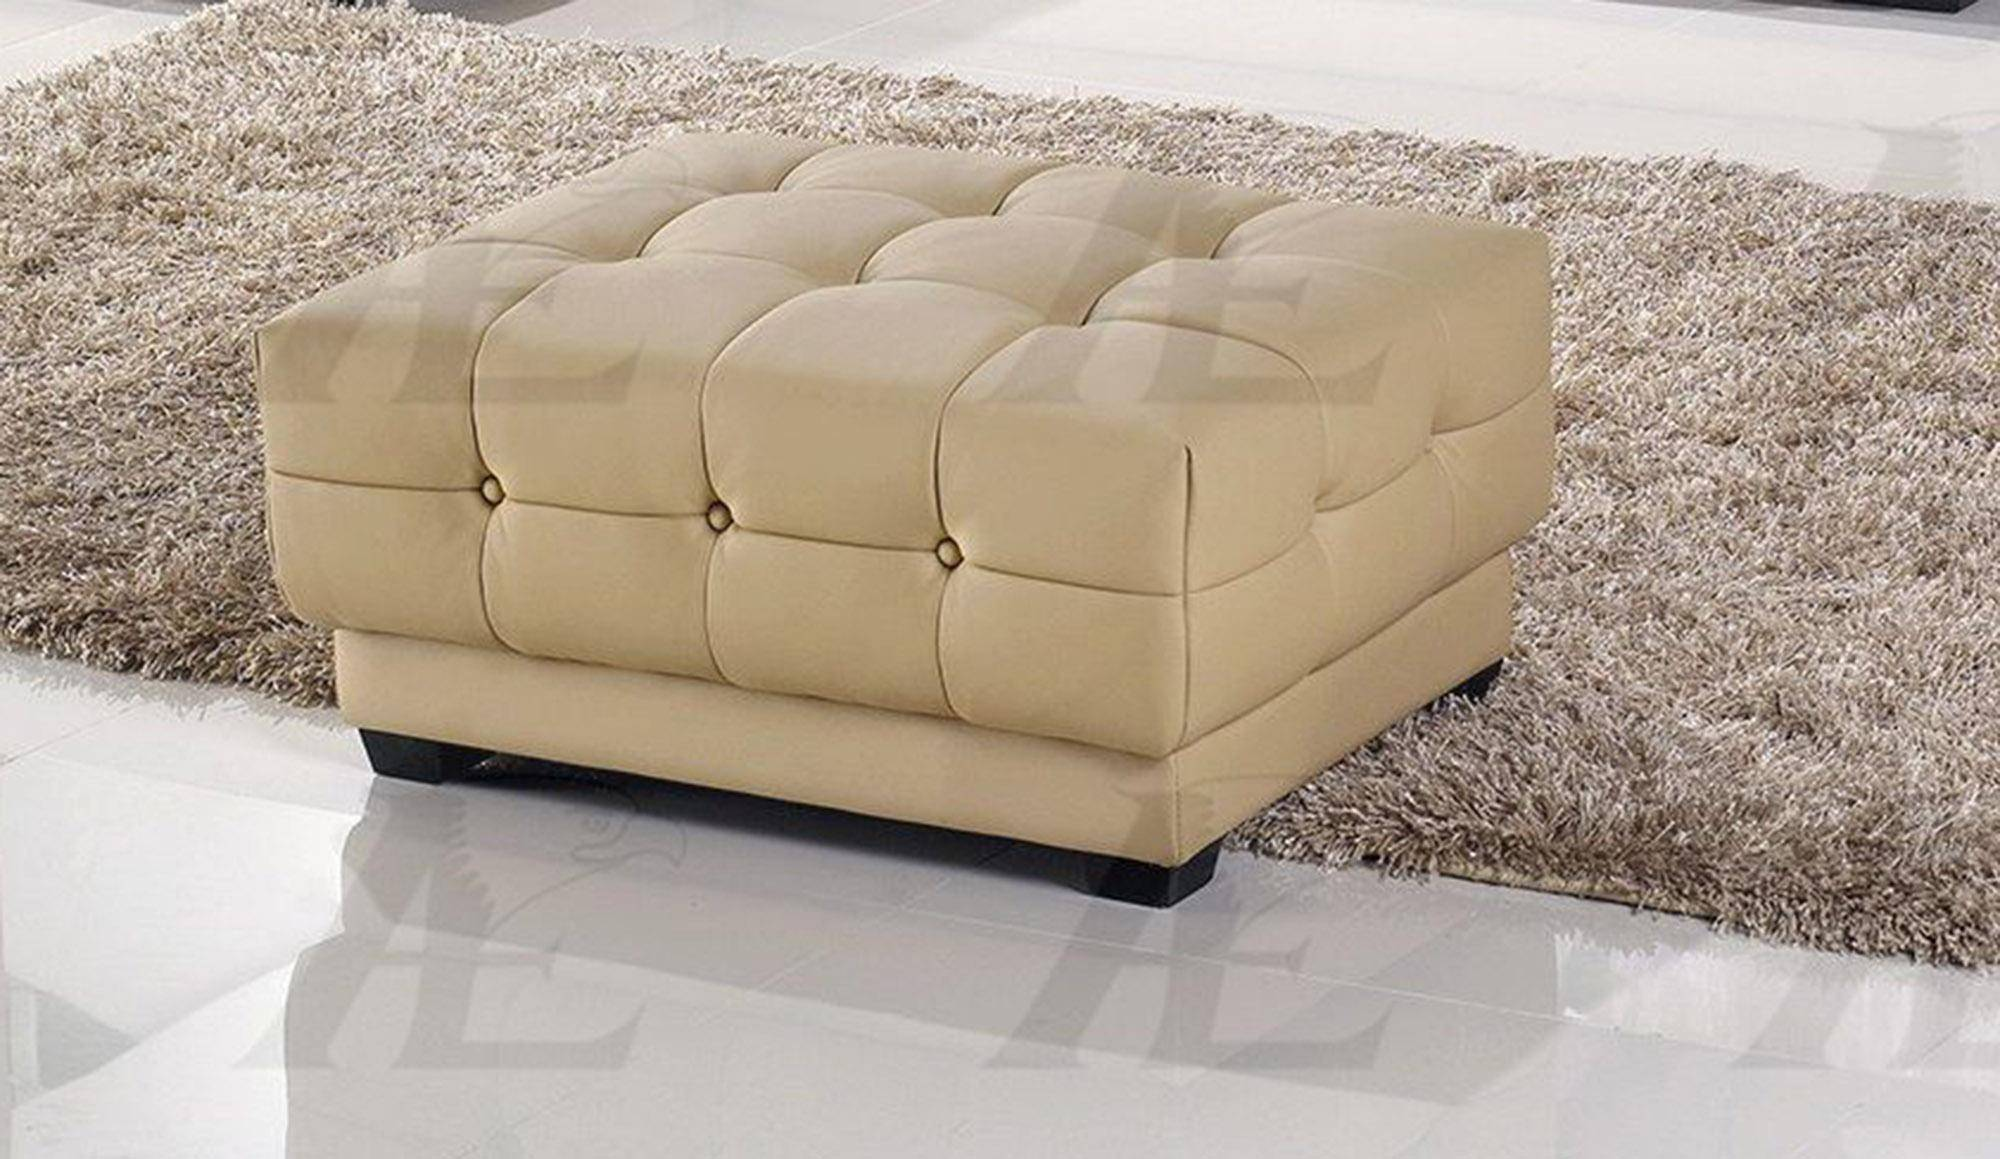 Admirable American Eagle Furniture Ae L296 Ca Camel Sofa Chaise Chair Pdpeps Interior Chair Design Pdpepsorg